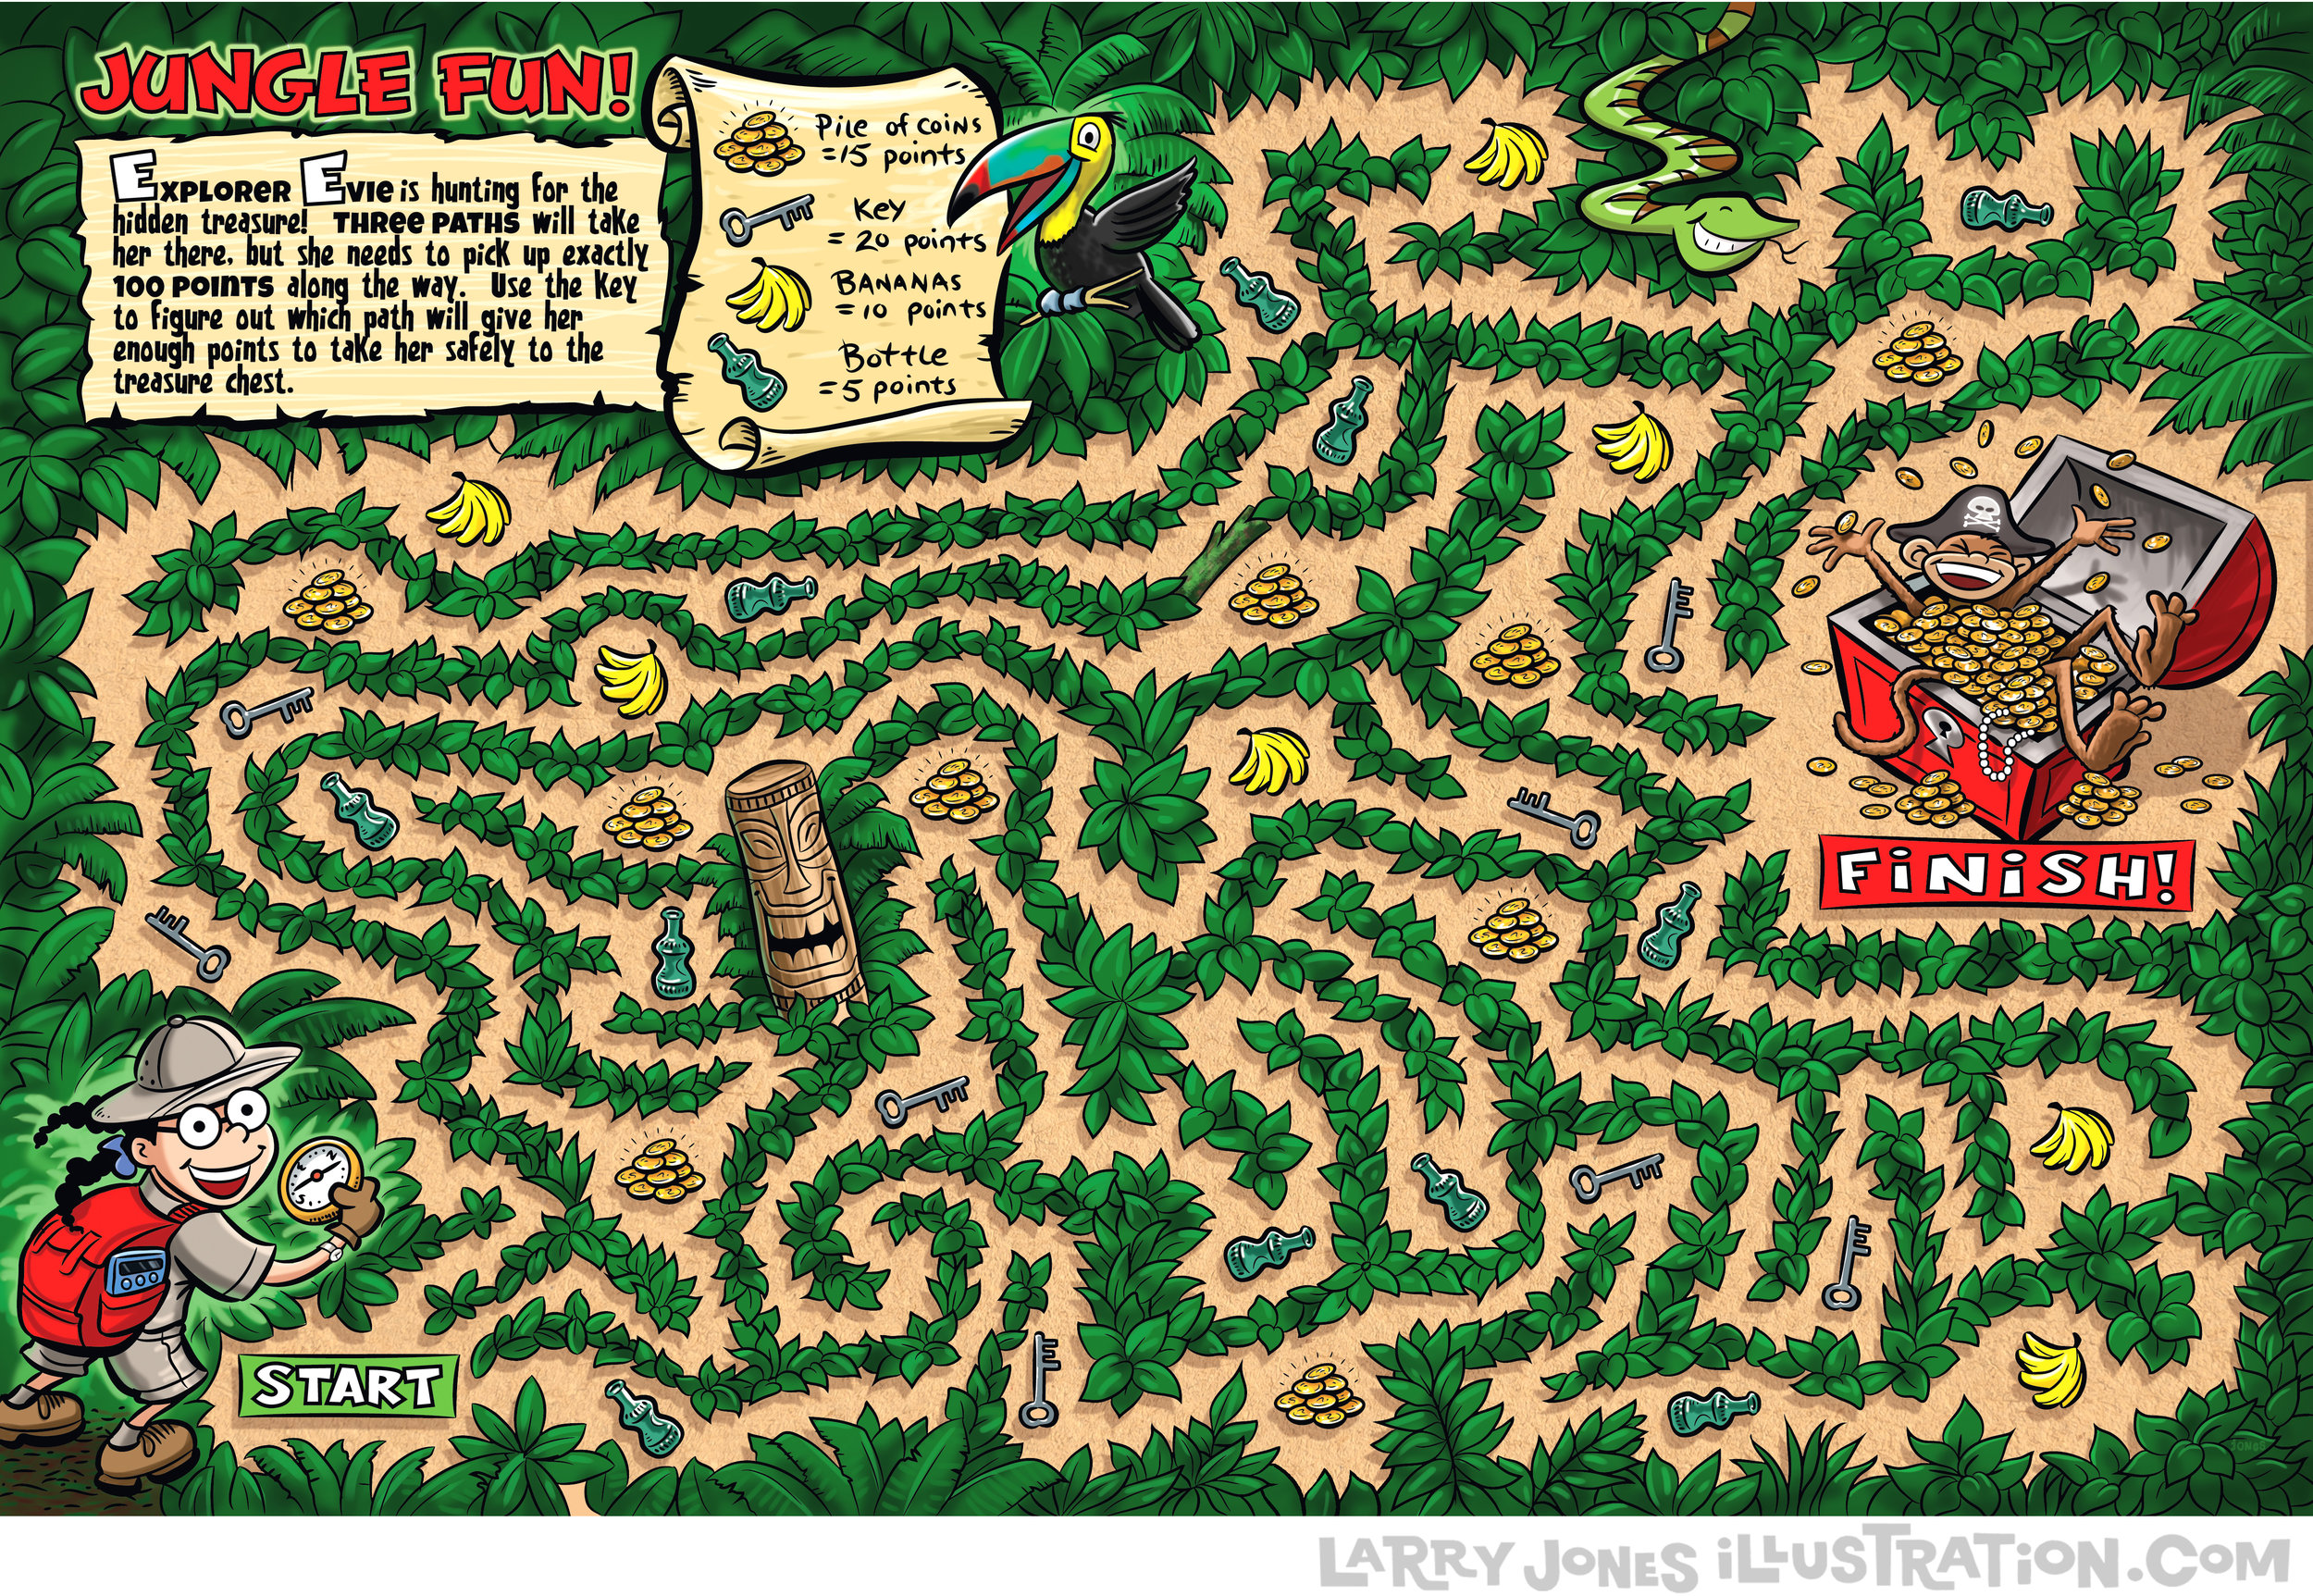 Maze_Jungle_Fun_1.jpg